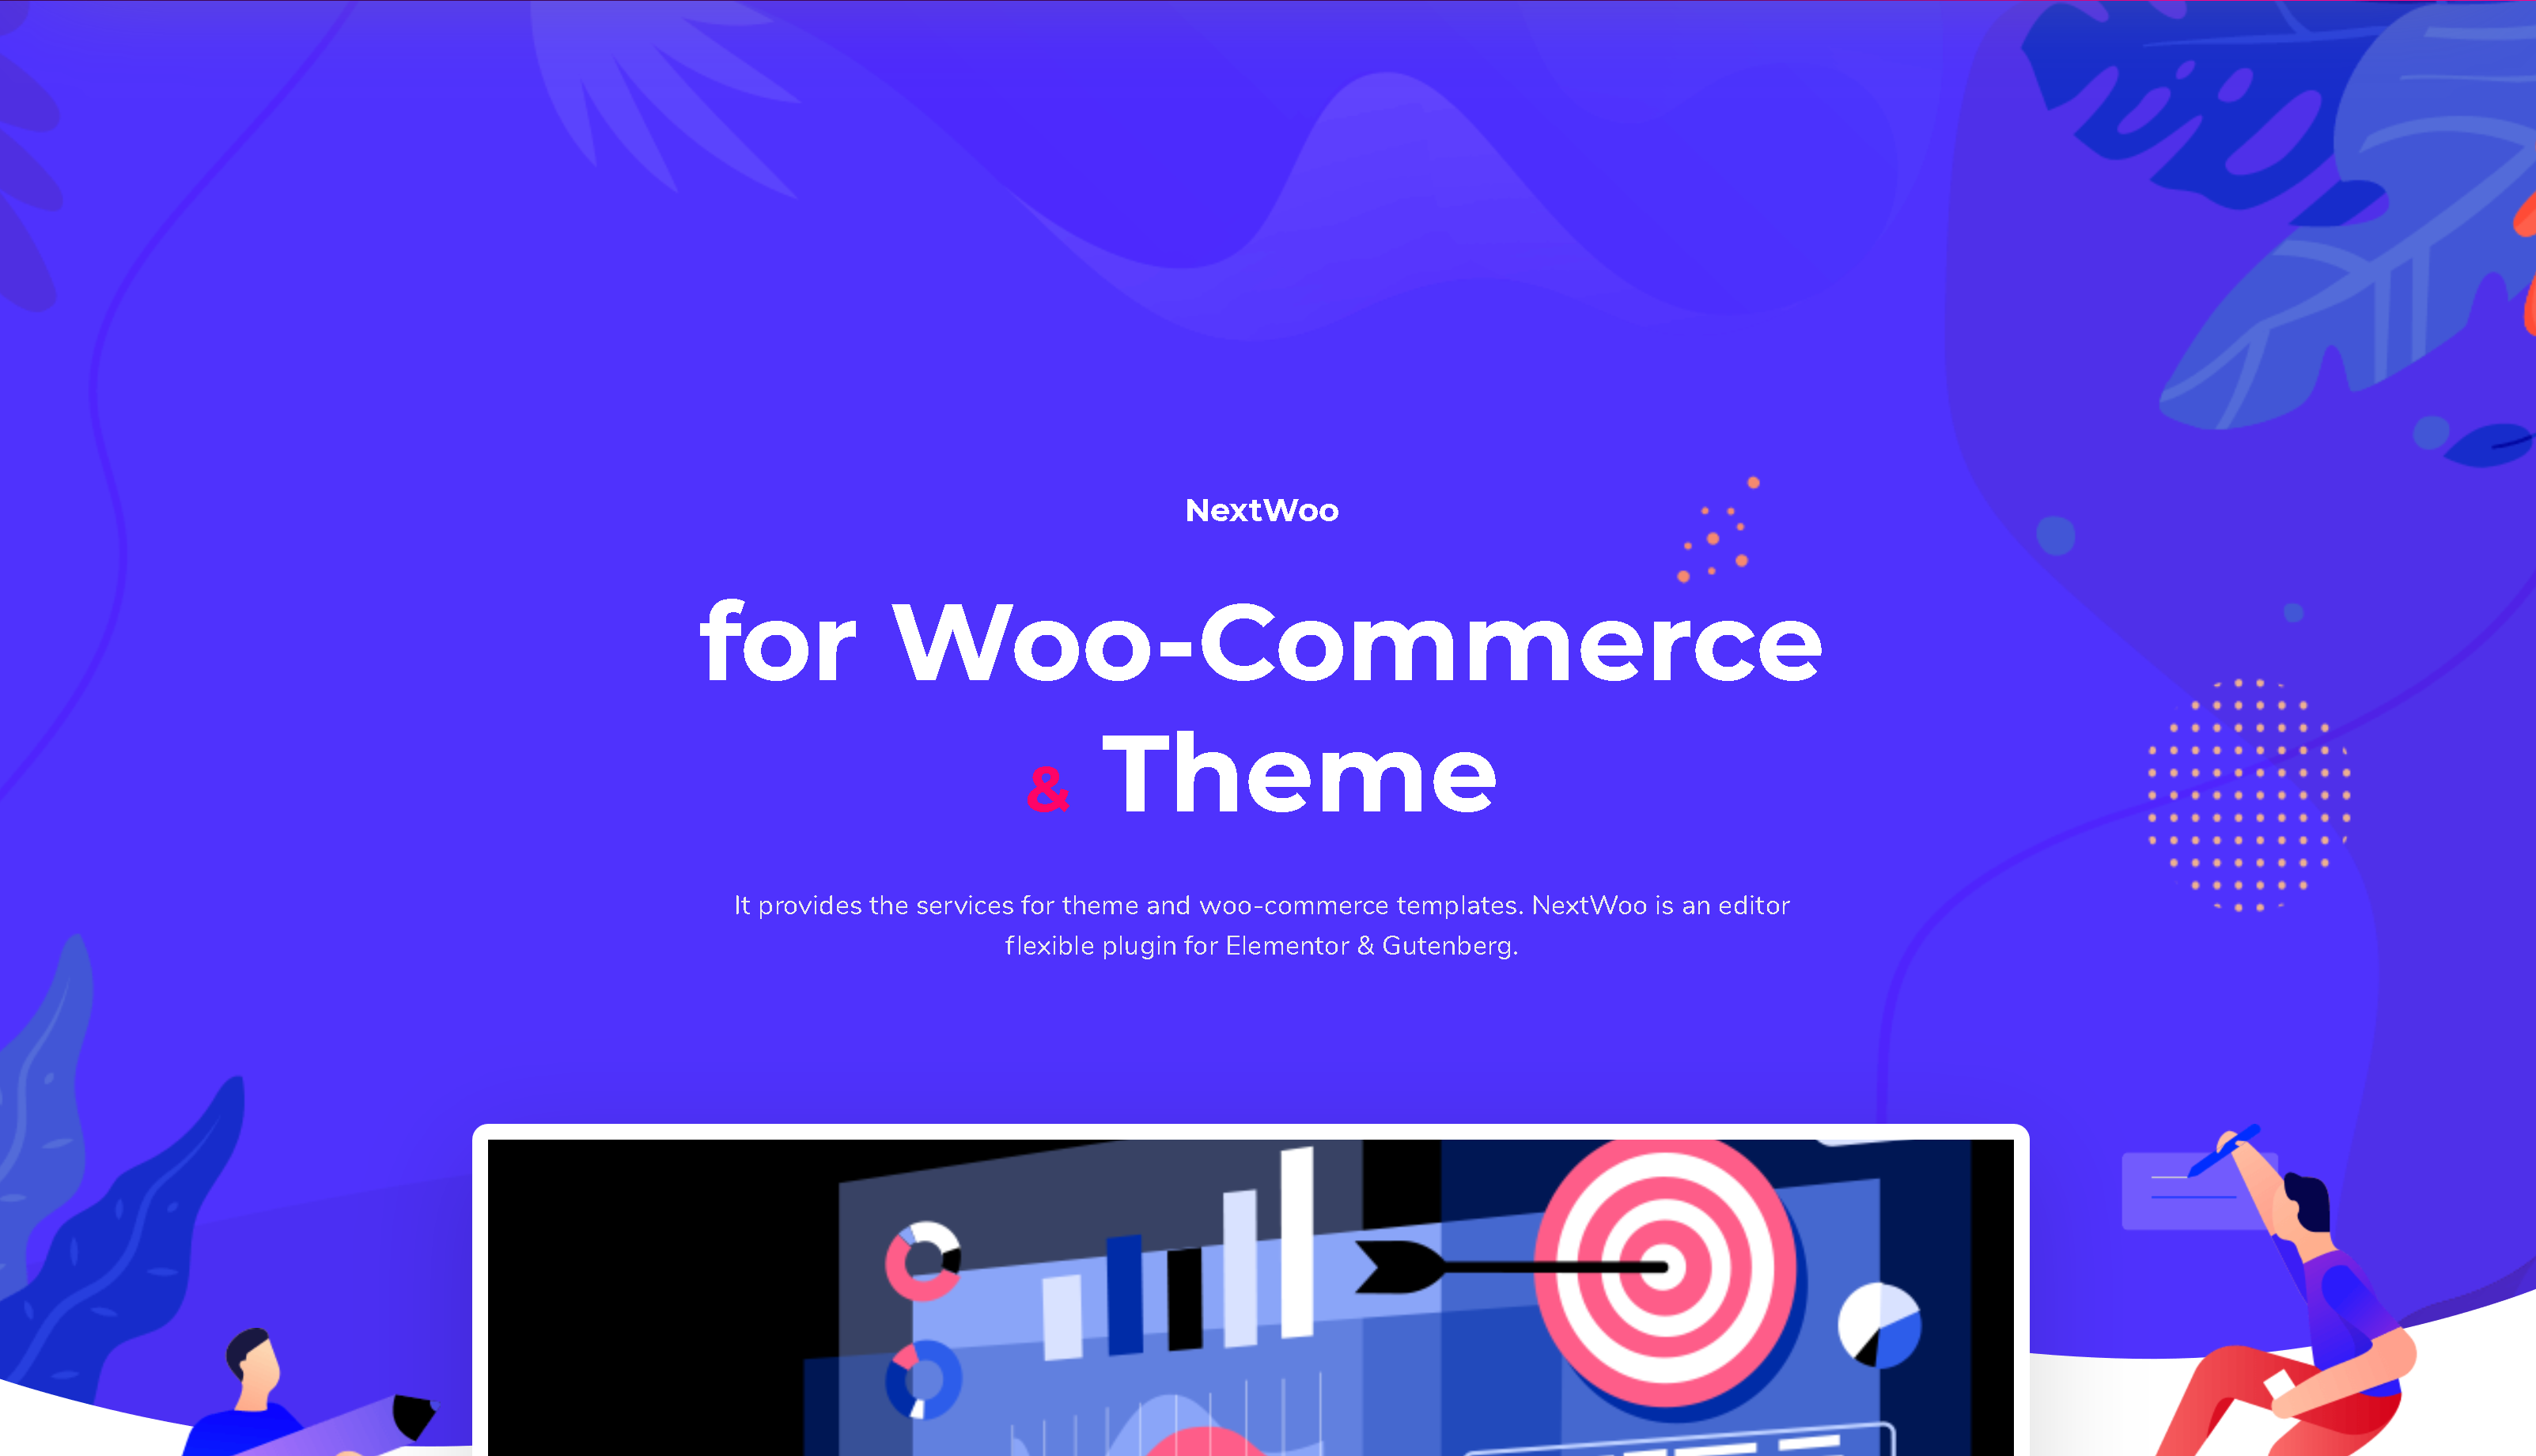 NextWoo Pro 3.0.0 for Woo-Commerce & Theme